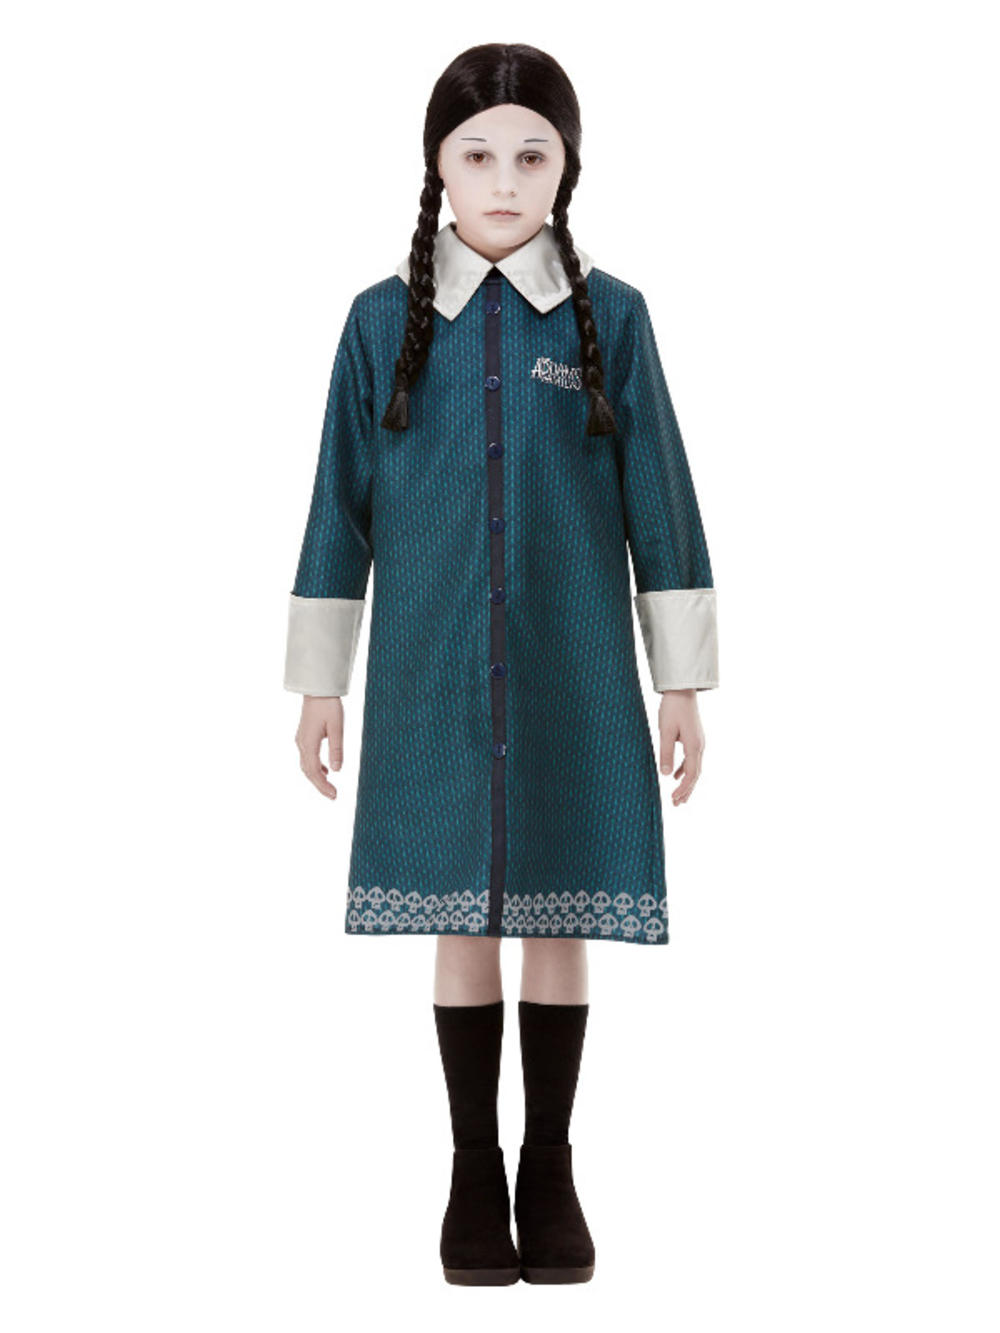 Wednesday Addams Family Girls Costume